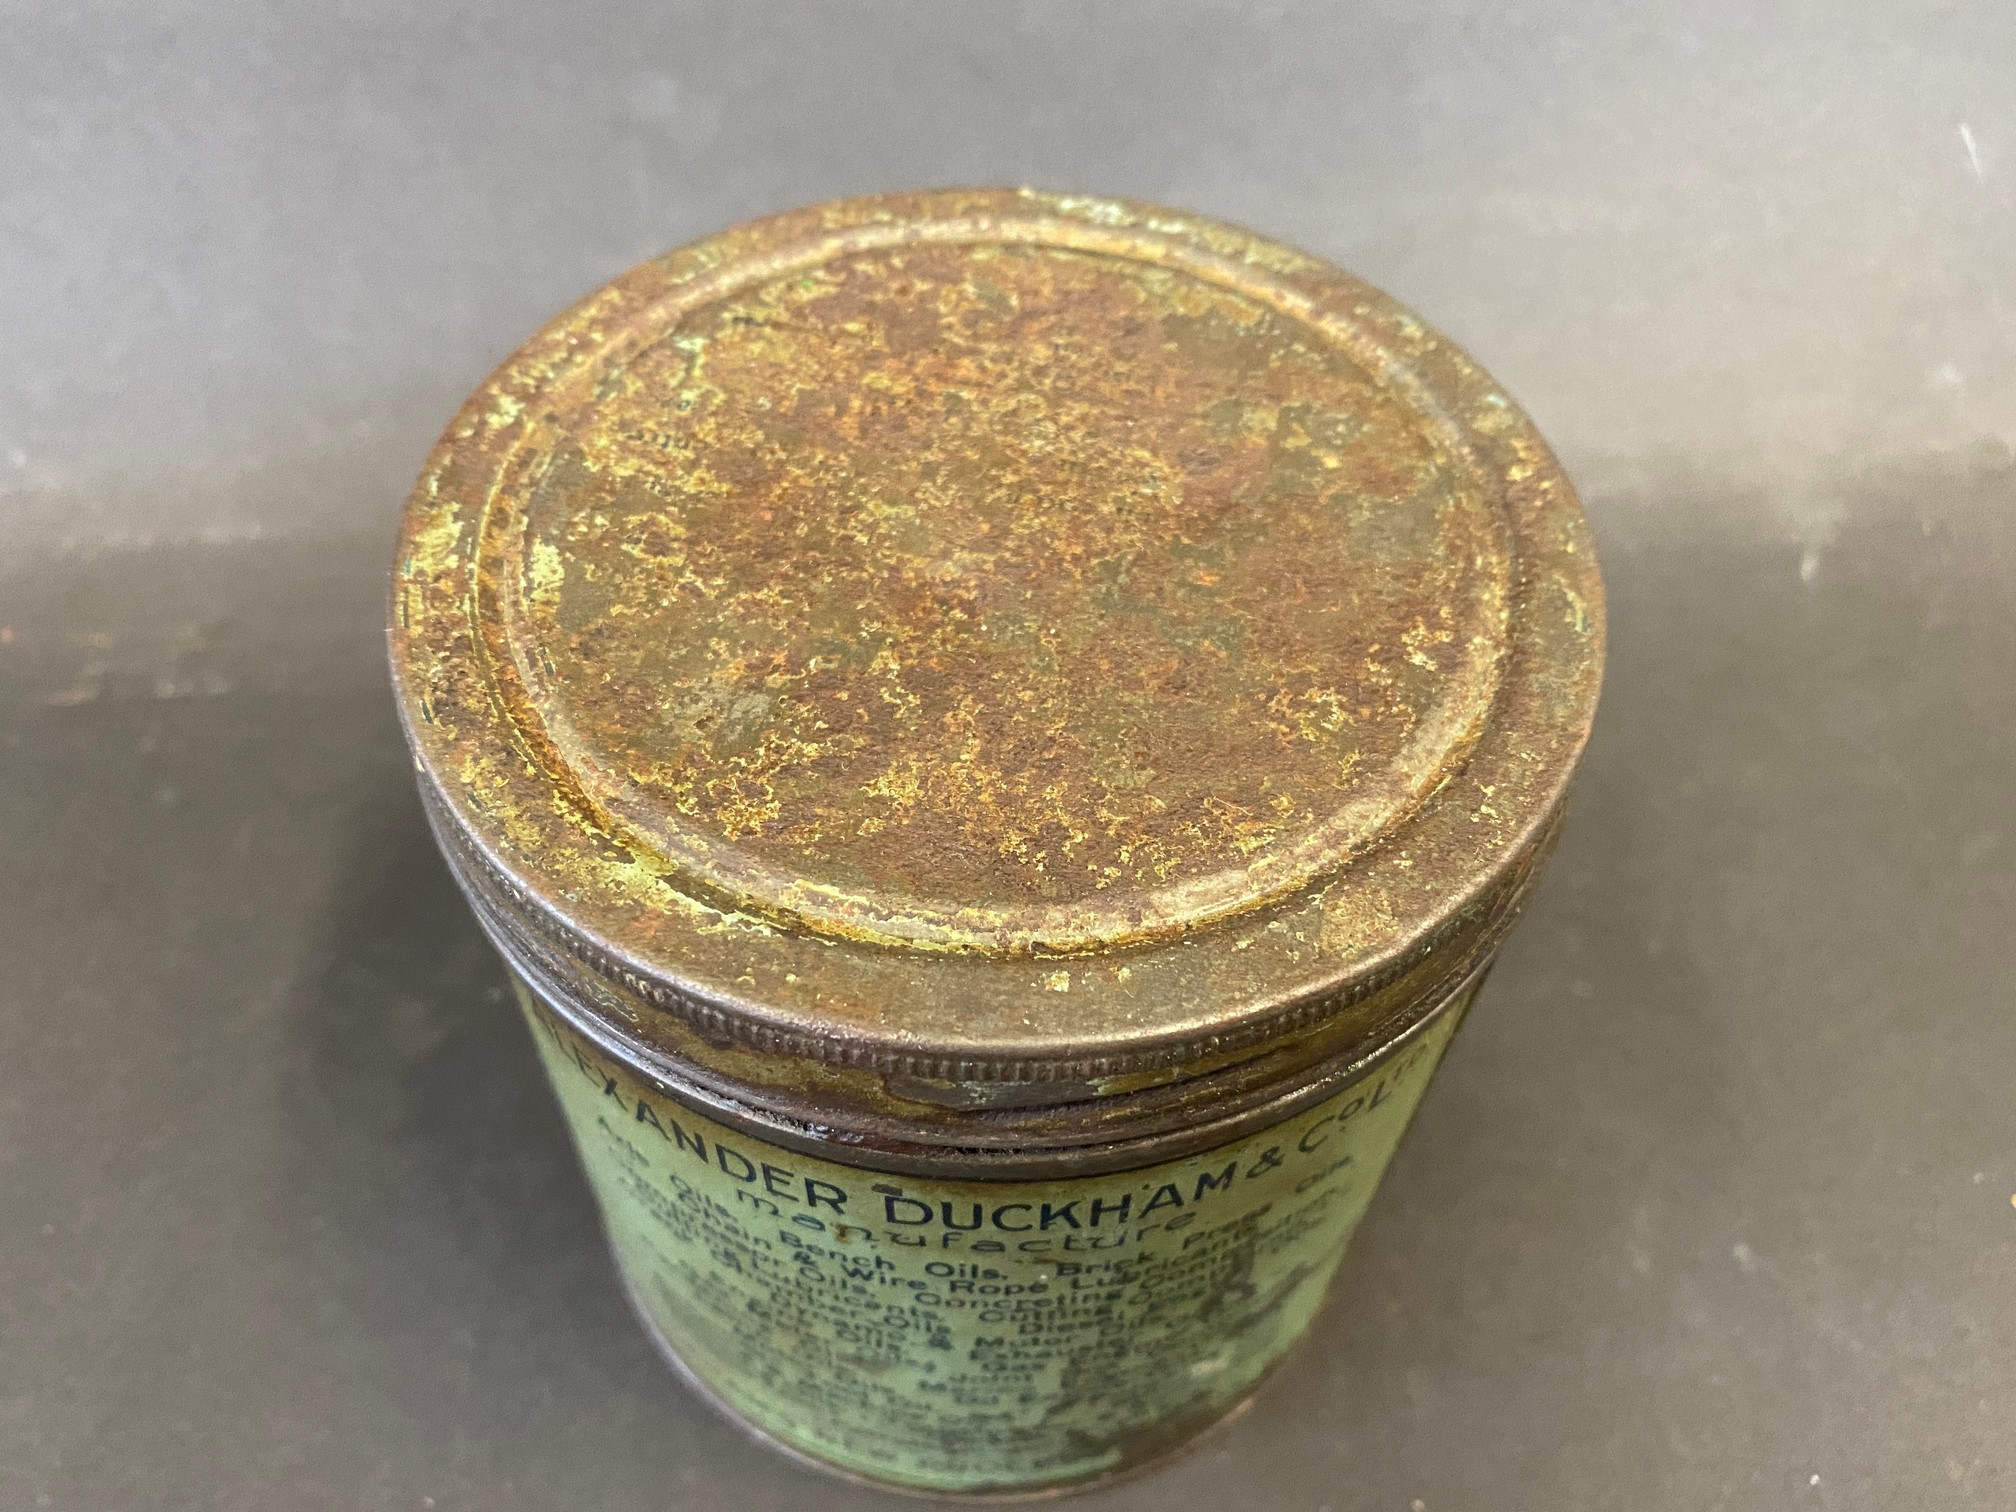 A Duckham's Adcol grease tin. - Image 4 of 5